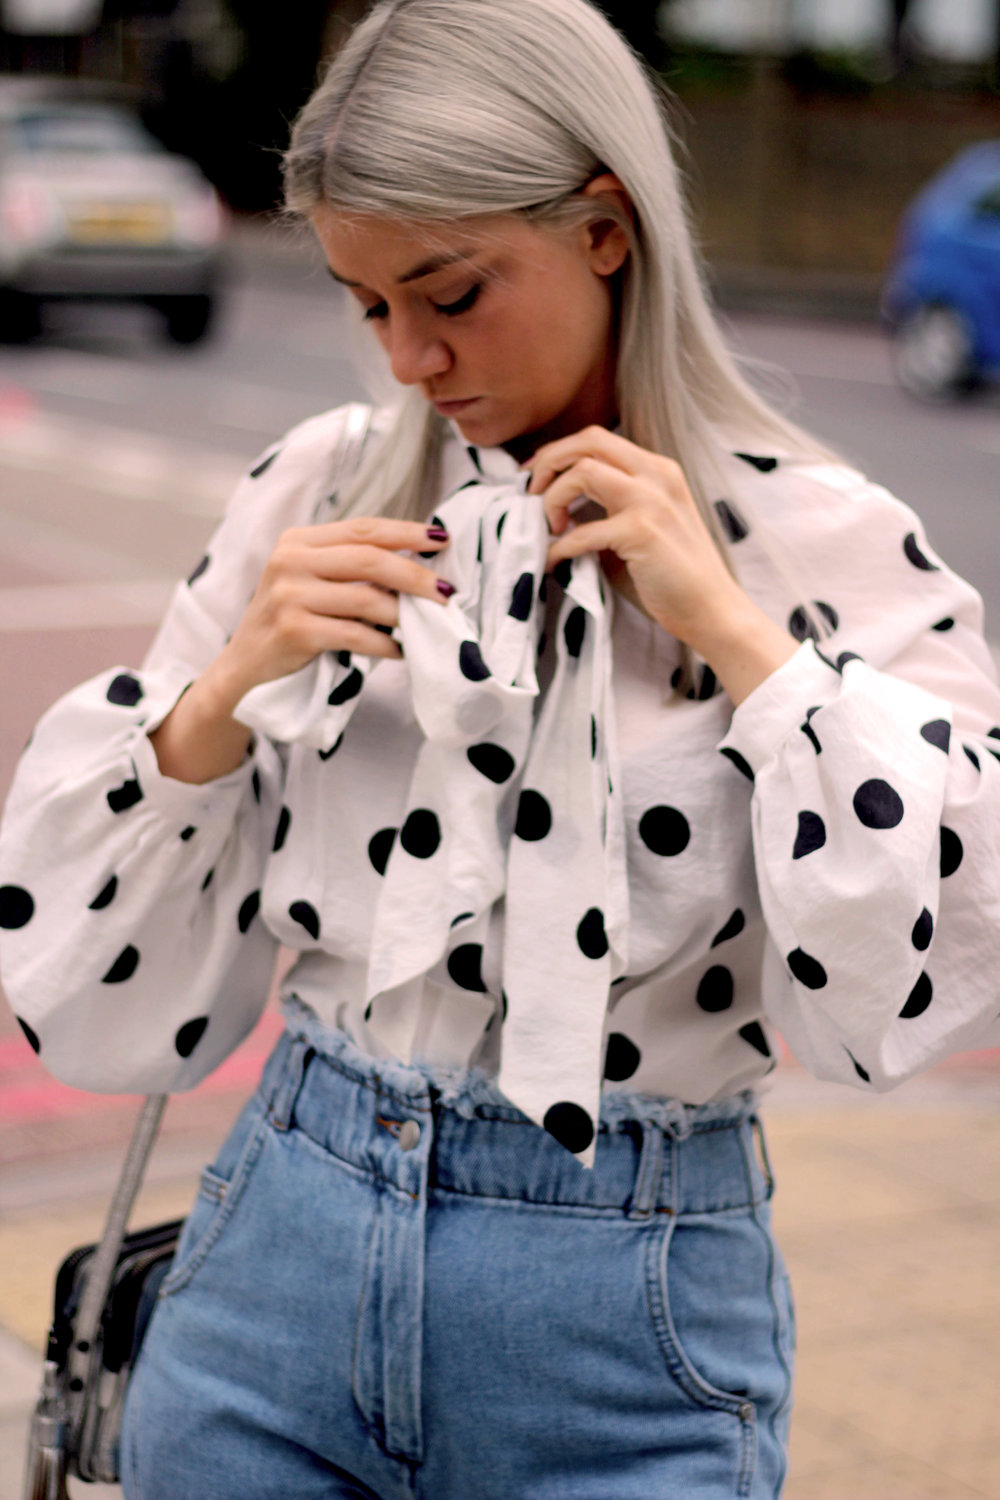 PUSSY BOW POLKA DOT BLOUSE, WIDE LEG FRAYED TOPSHOP JEANS, BLACK ANKLE BOOTS, NORTHERN MAGPIE, JOEY TAYLOR 3